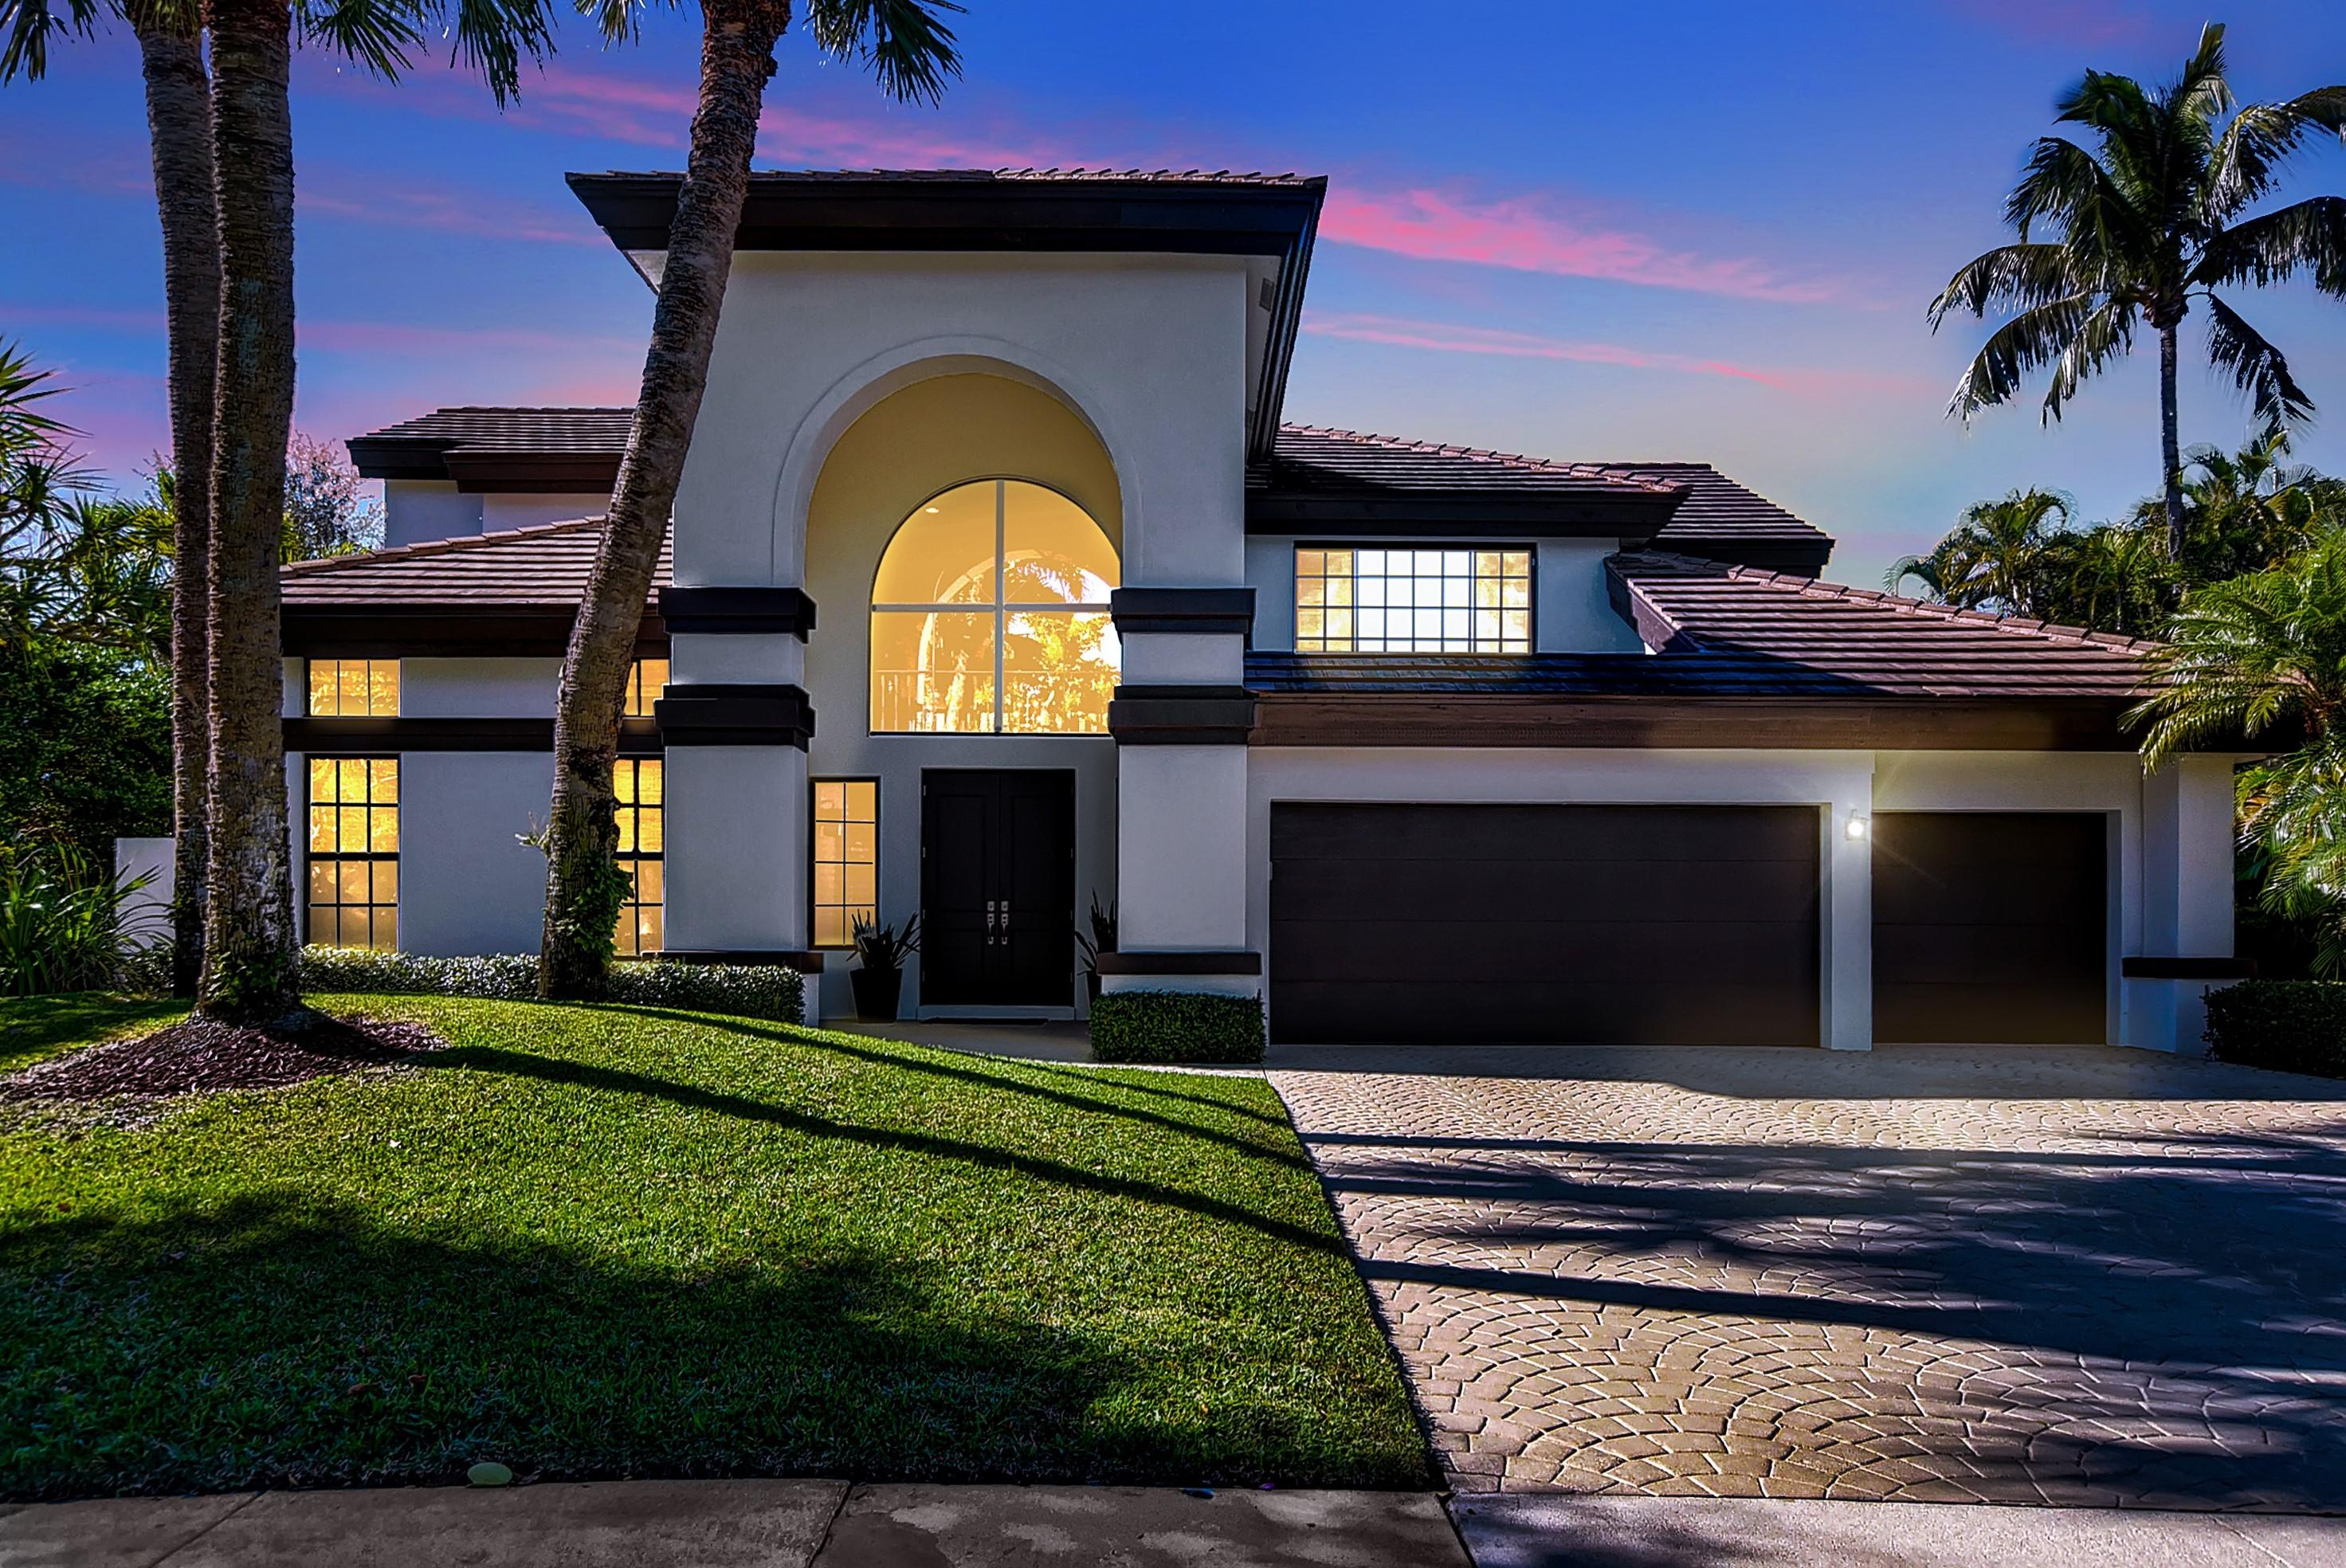 Photo of 3098 NW 60th Street, Boca Raton, FL 33496